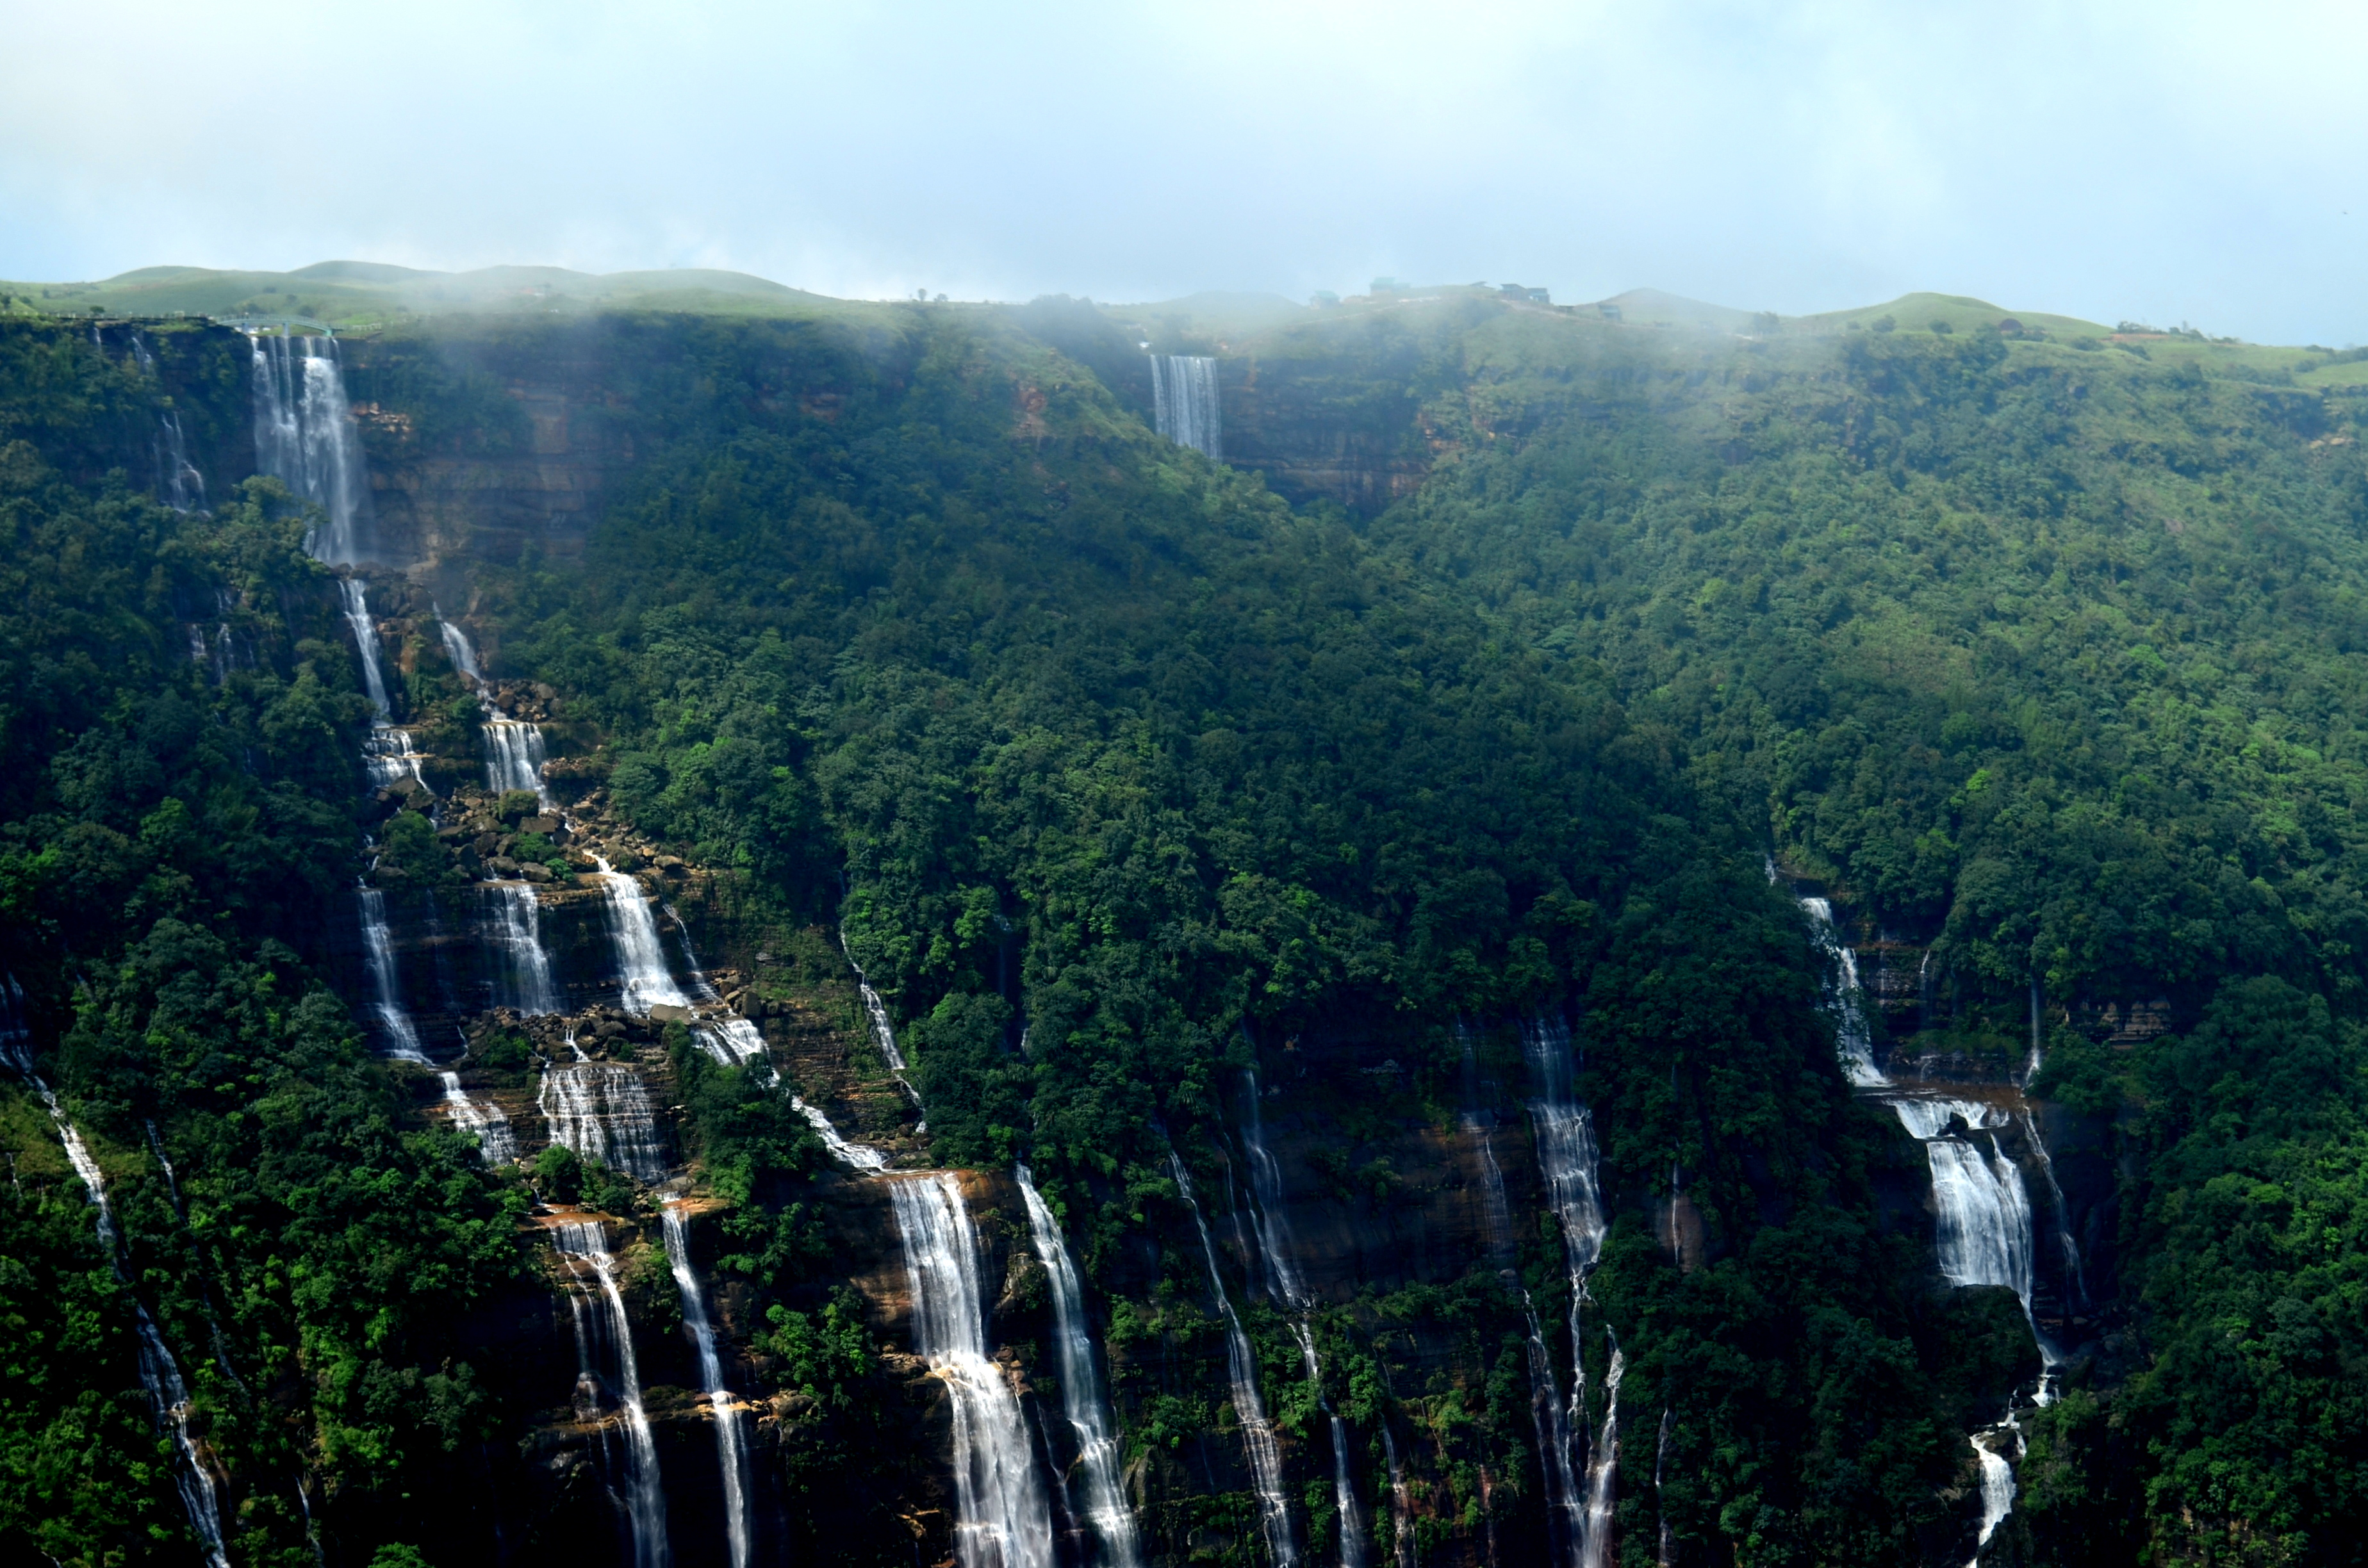 Nohsngithiang or Seven Sister Falls, one of the highest waterfall in India.